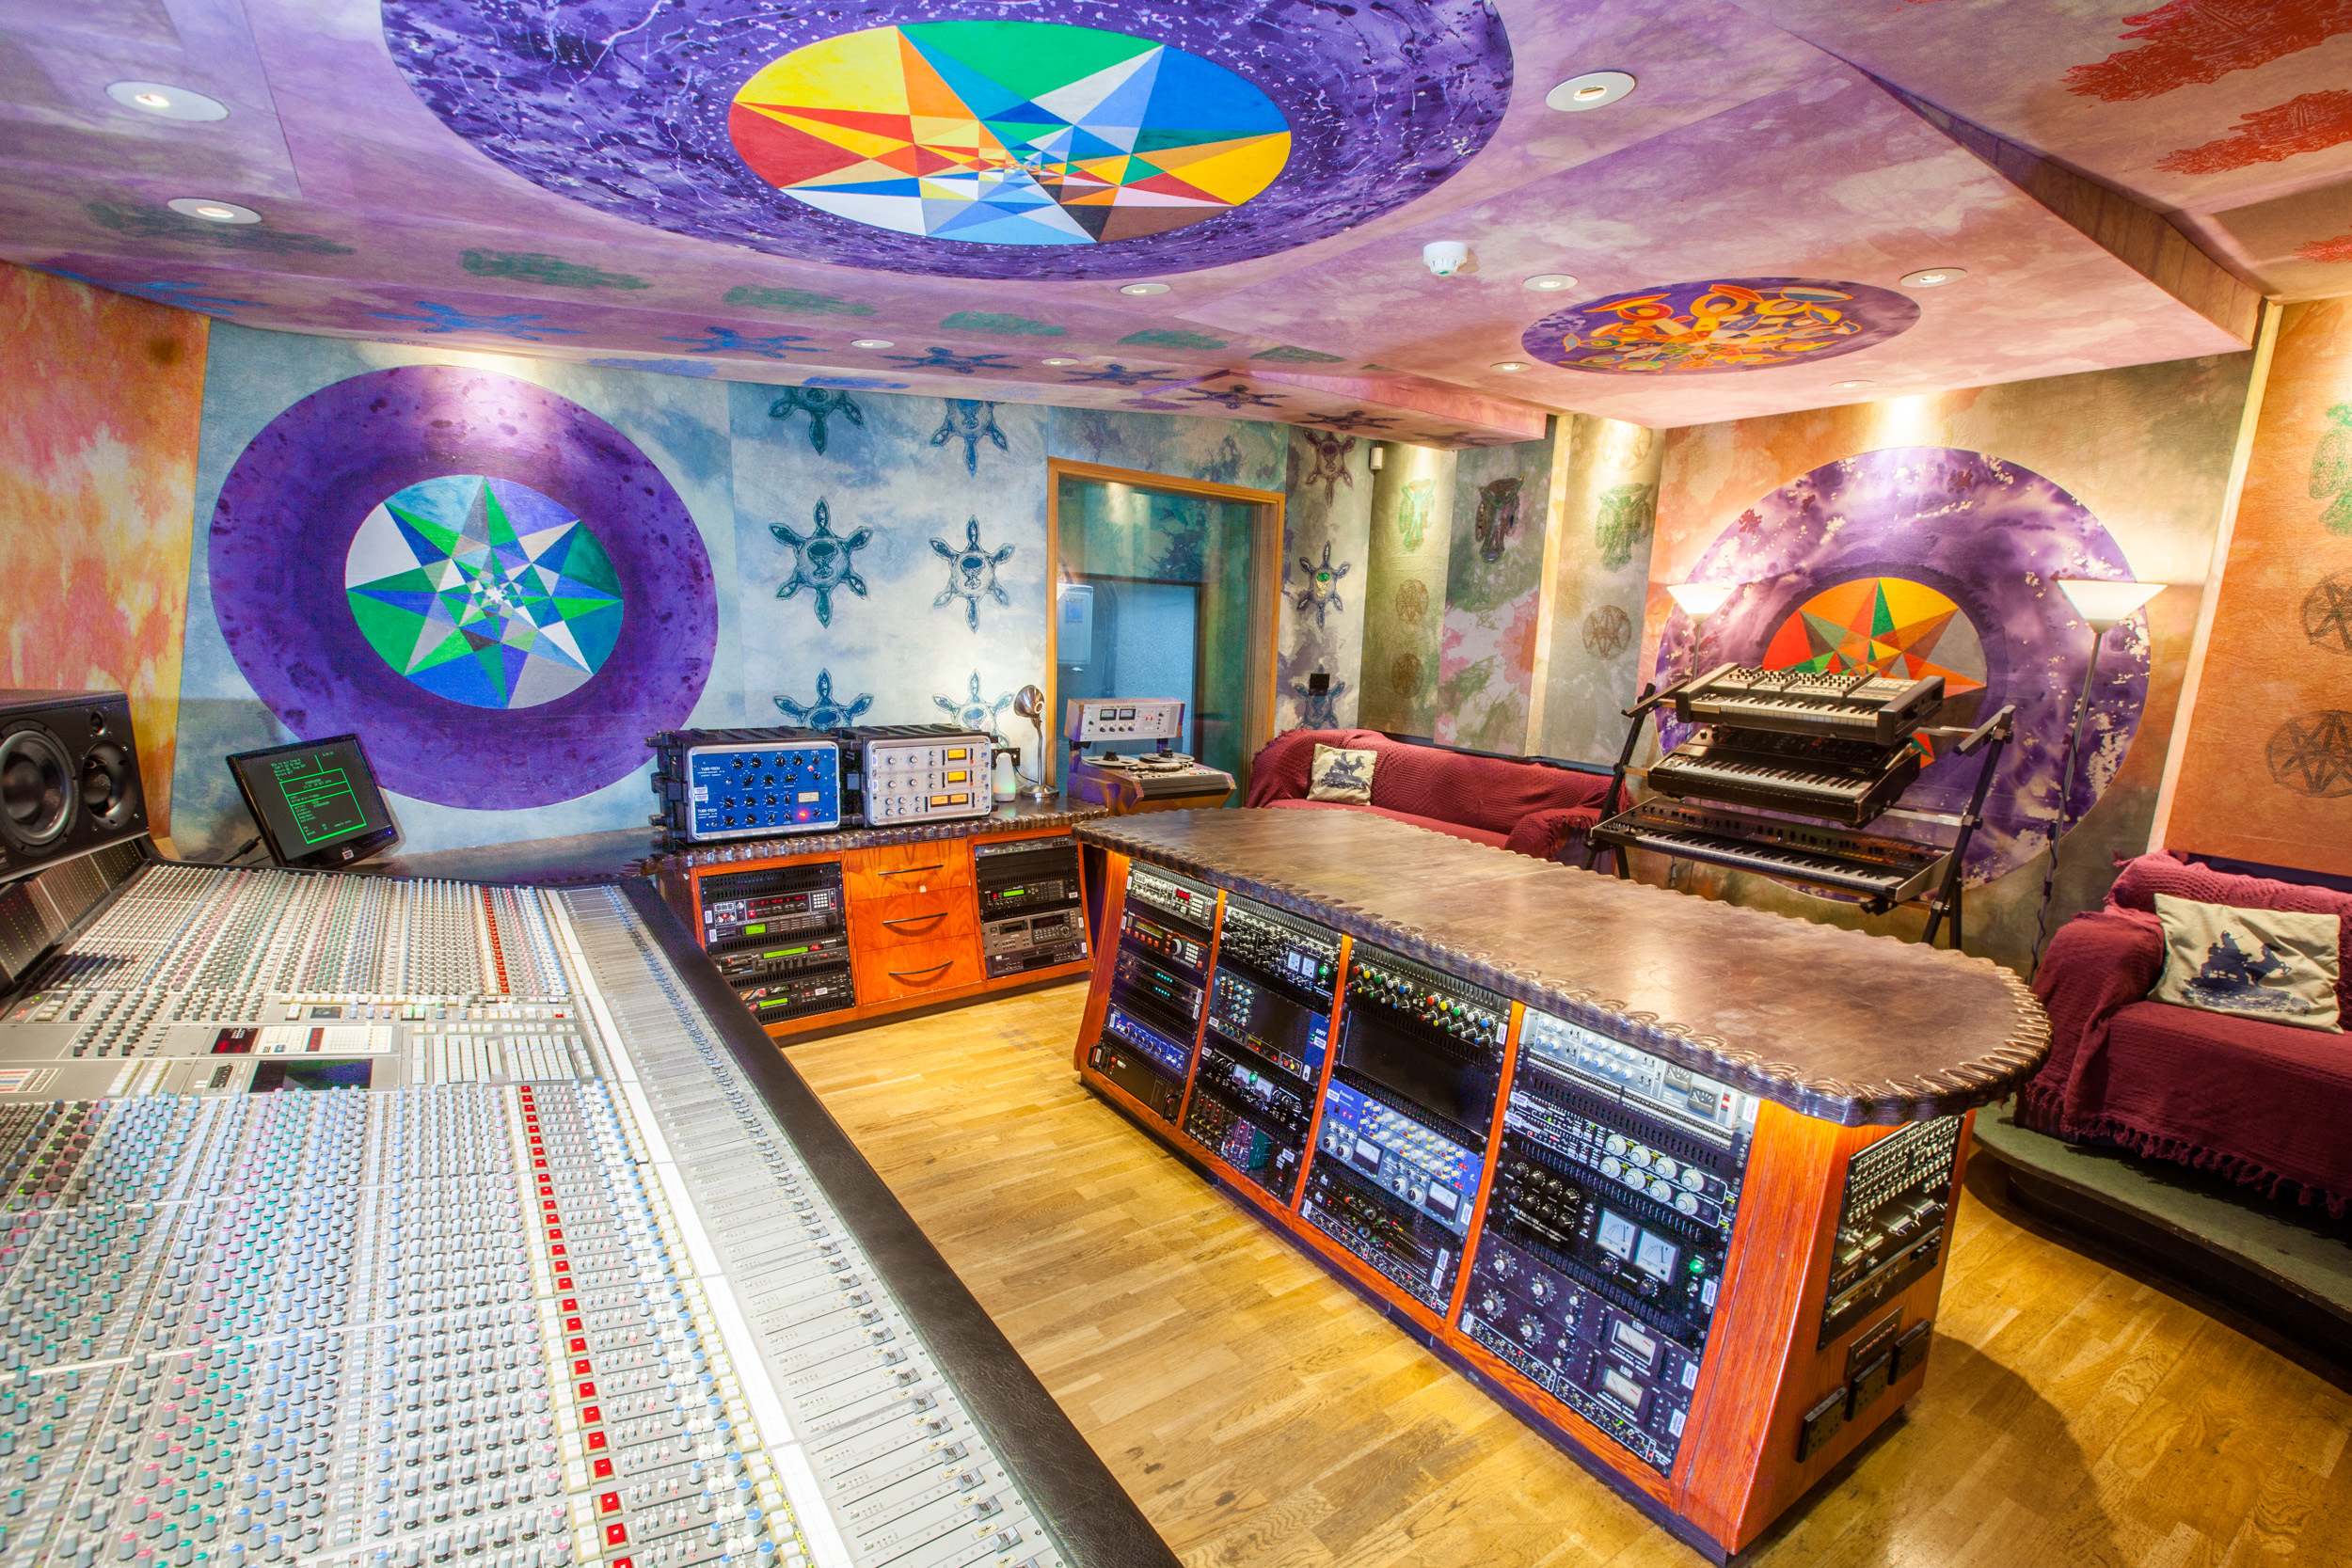 4. Studio 3 desk and outboard from front left